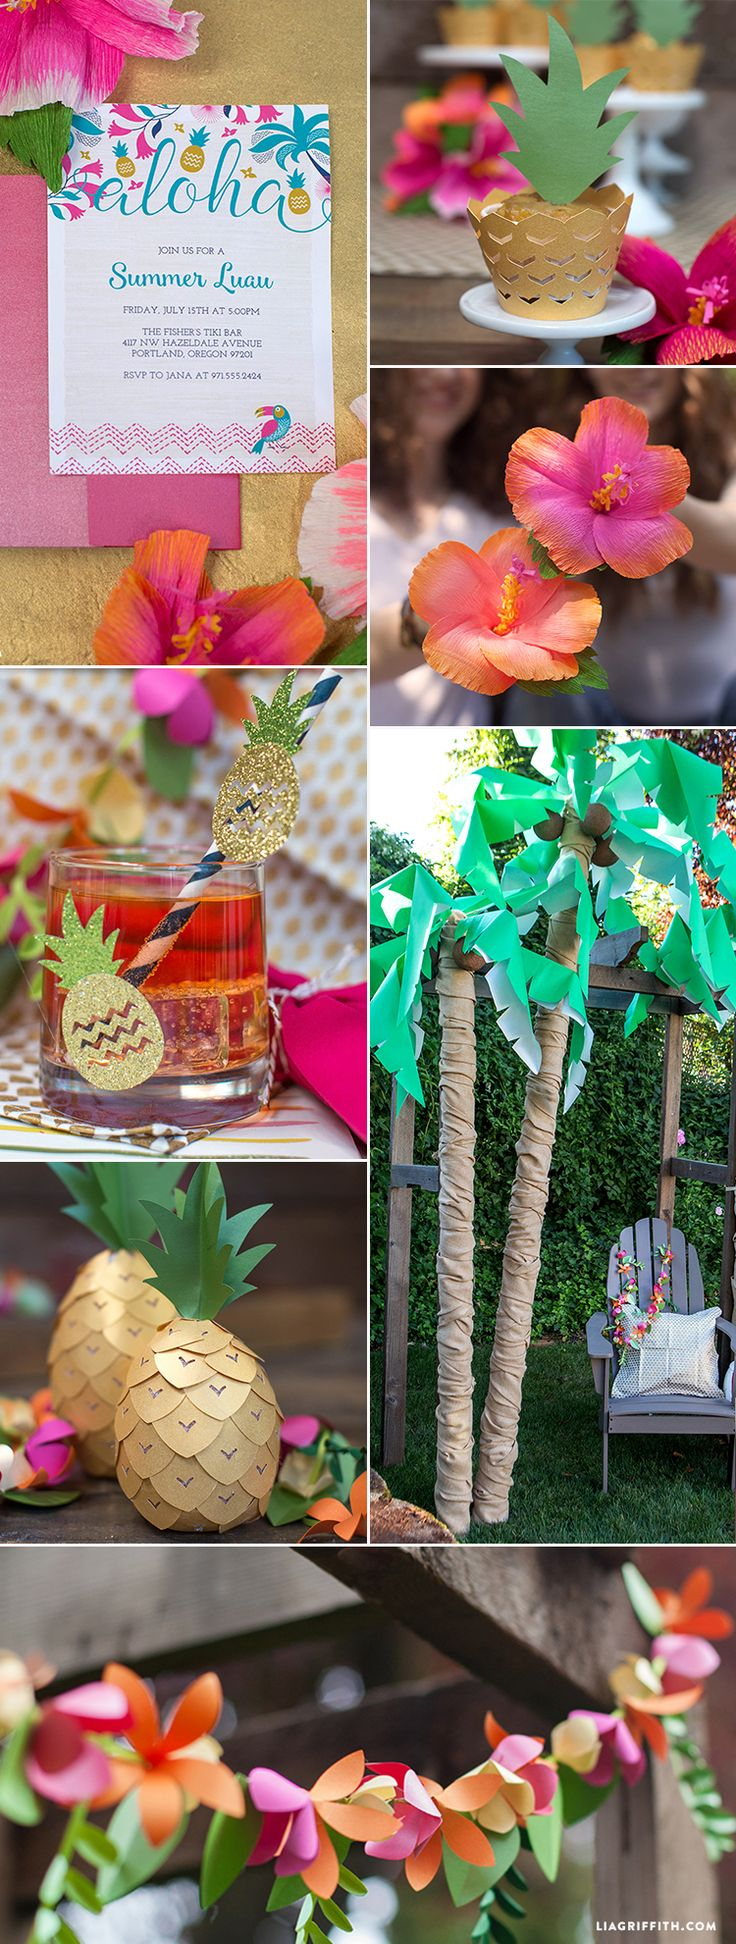 Luau Party Ideas - Lia Griffith